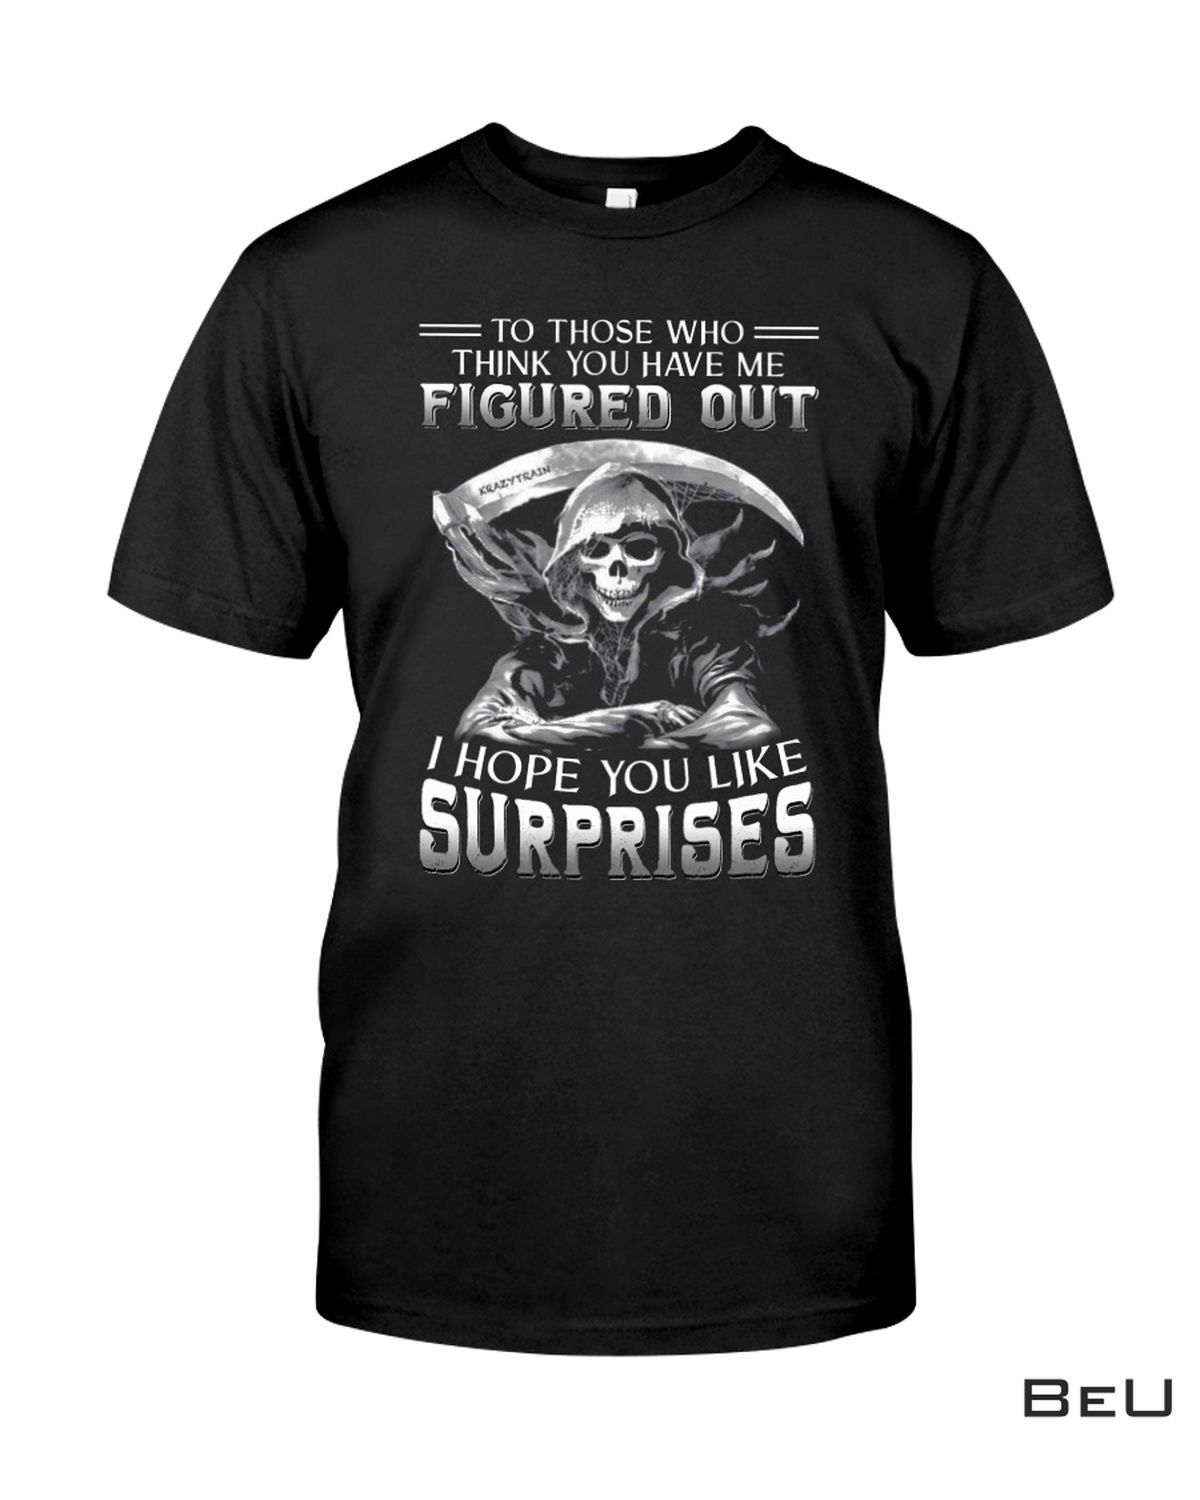 To Those Who Think You Have Me Figure Out I Hope You Surprise Death Shirt, hoodie, tank top